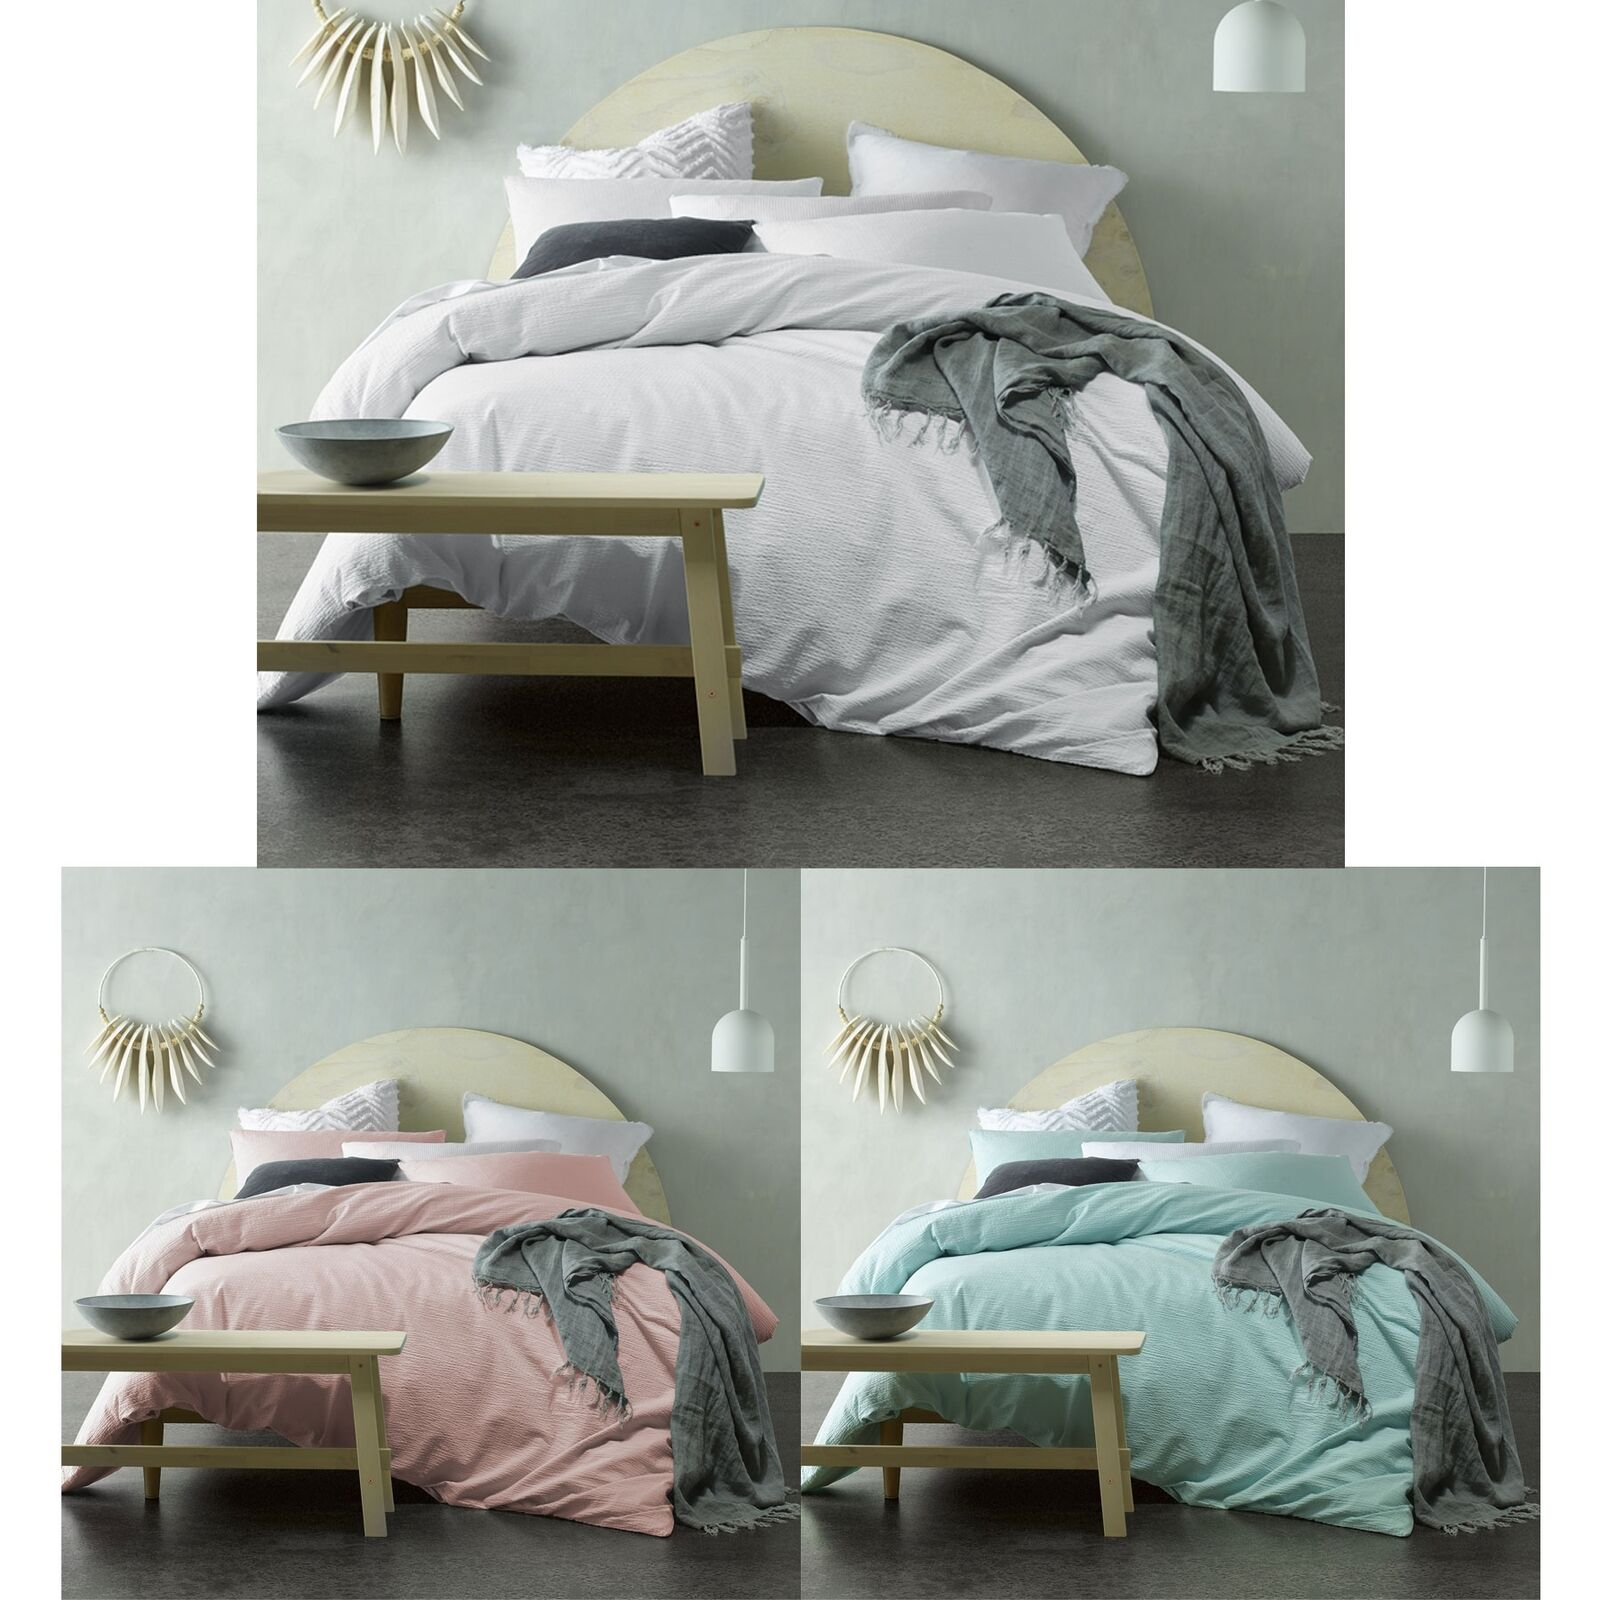 Crinkle Cotton Quilt Cover Set by Accessorize - SINGLE DOUBLE QUEEN KING